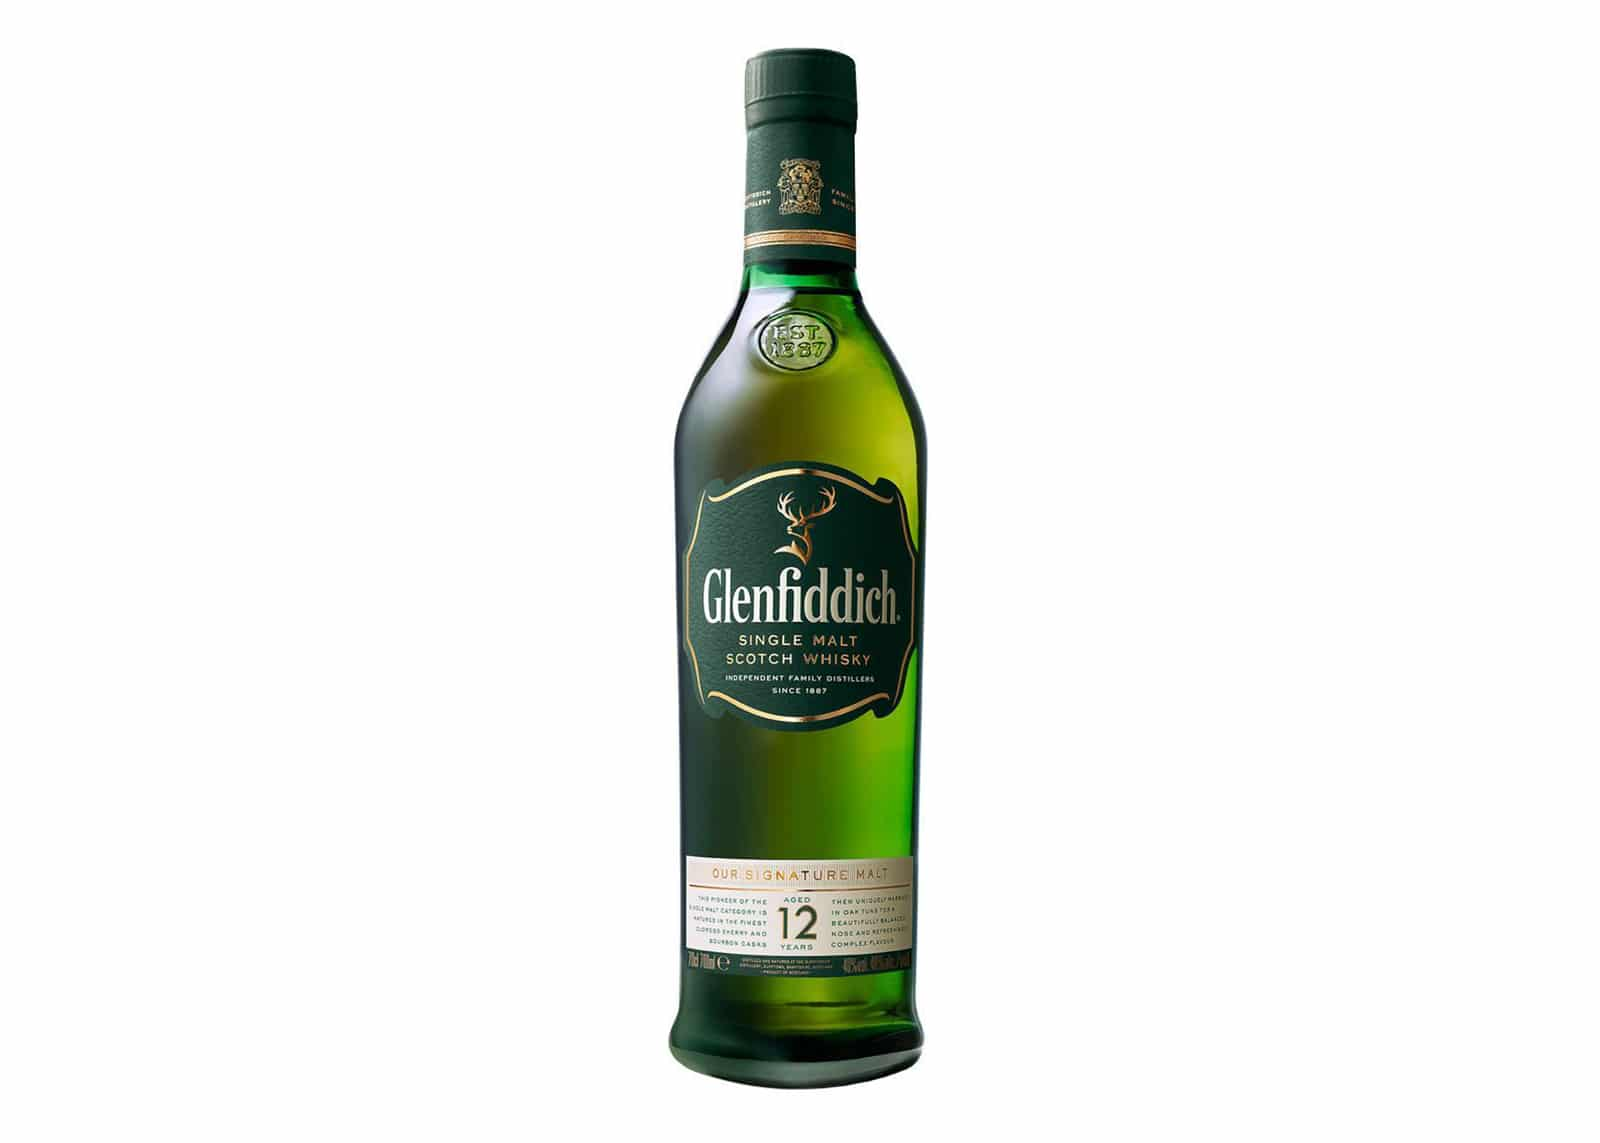 Glenfiddich-Aged-12-Years